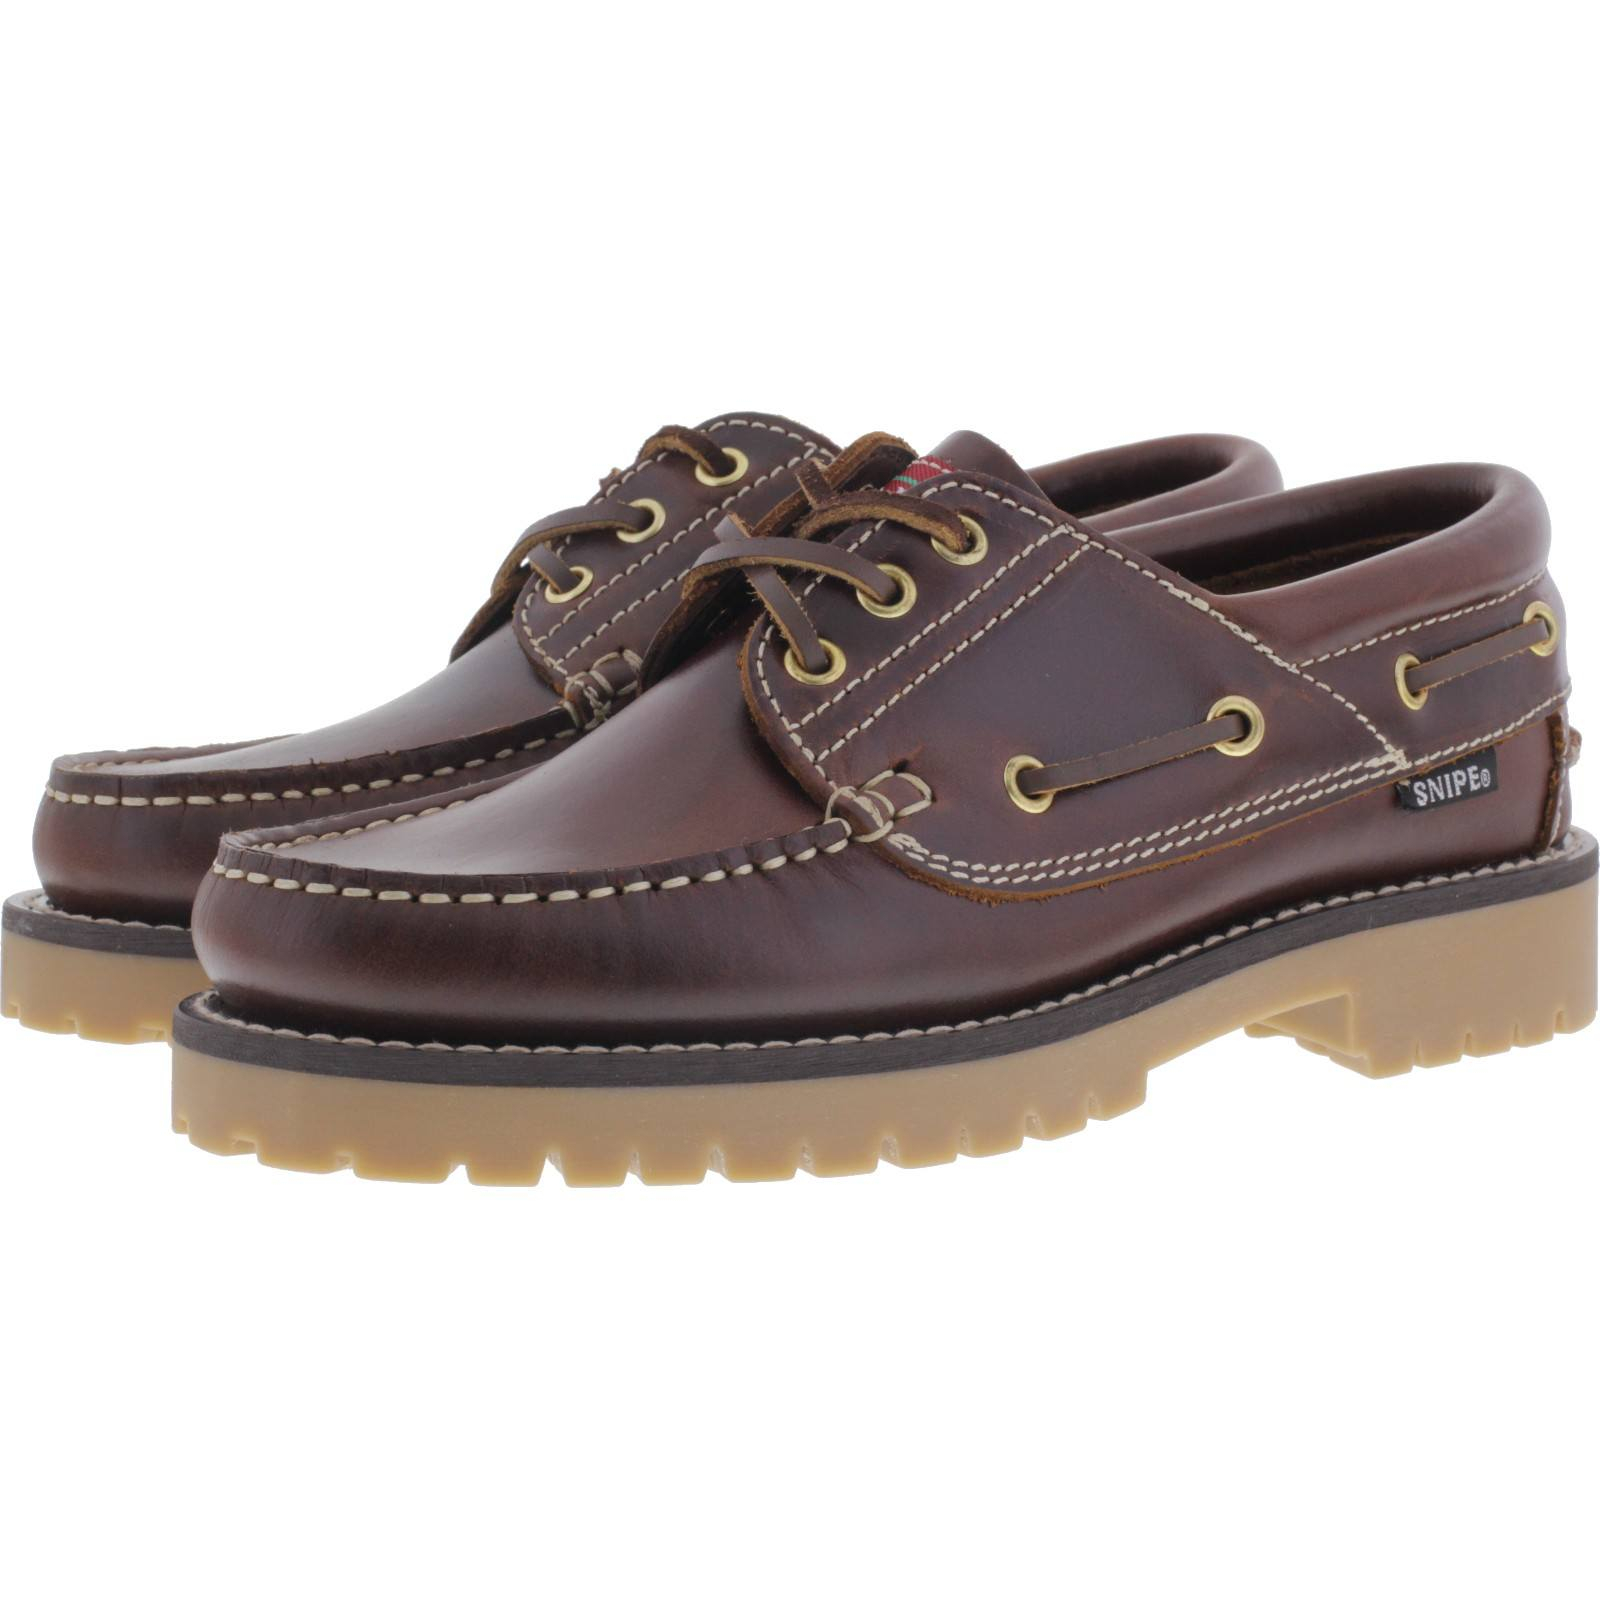 Rohde Shoes Online